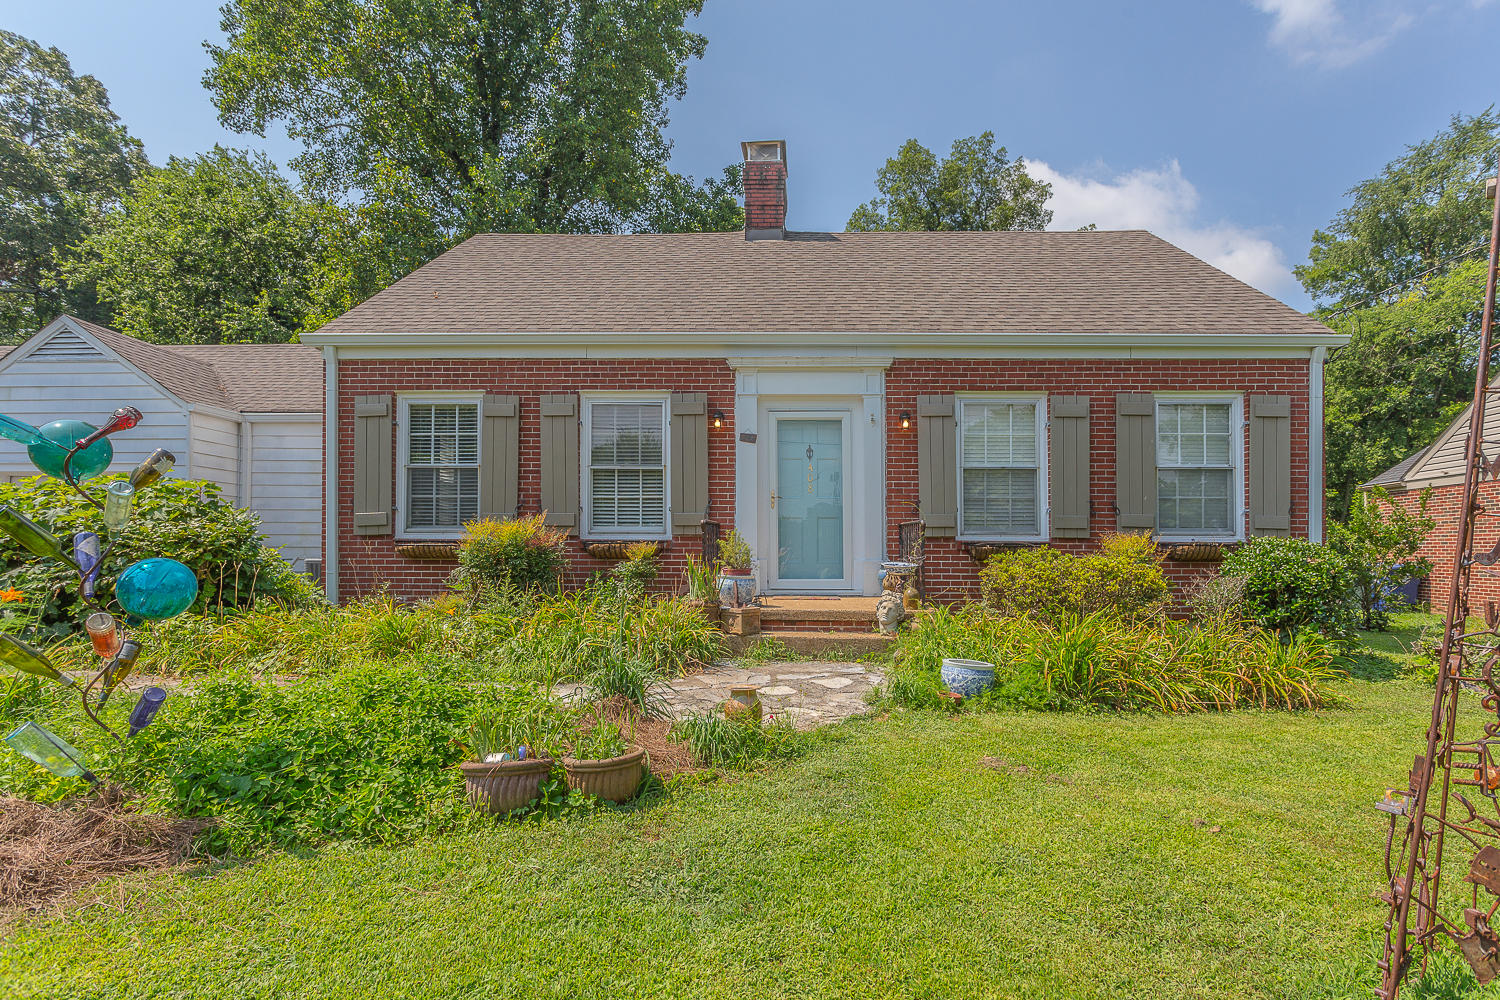 408 Frazier Dr, Chattanooga, TN 37421